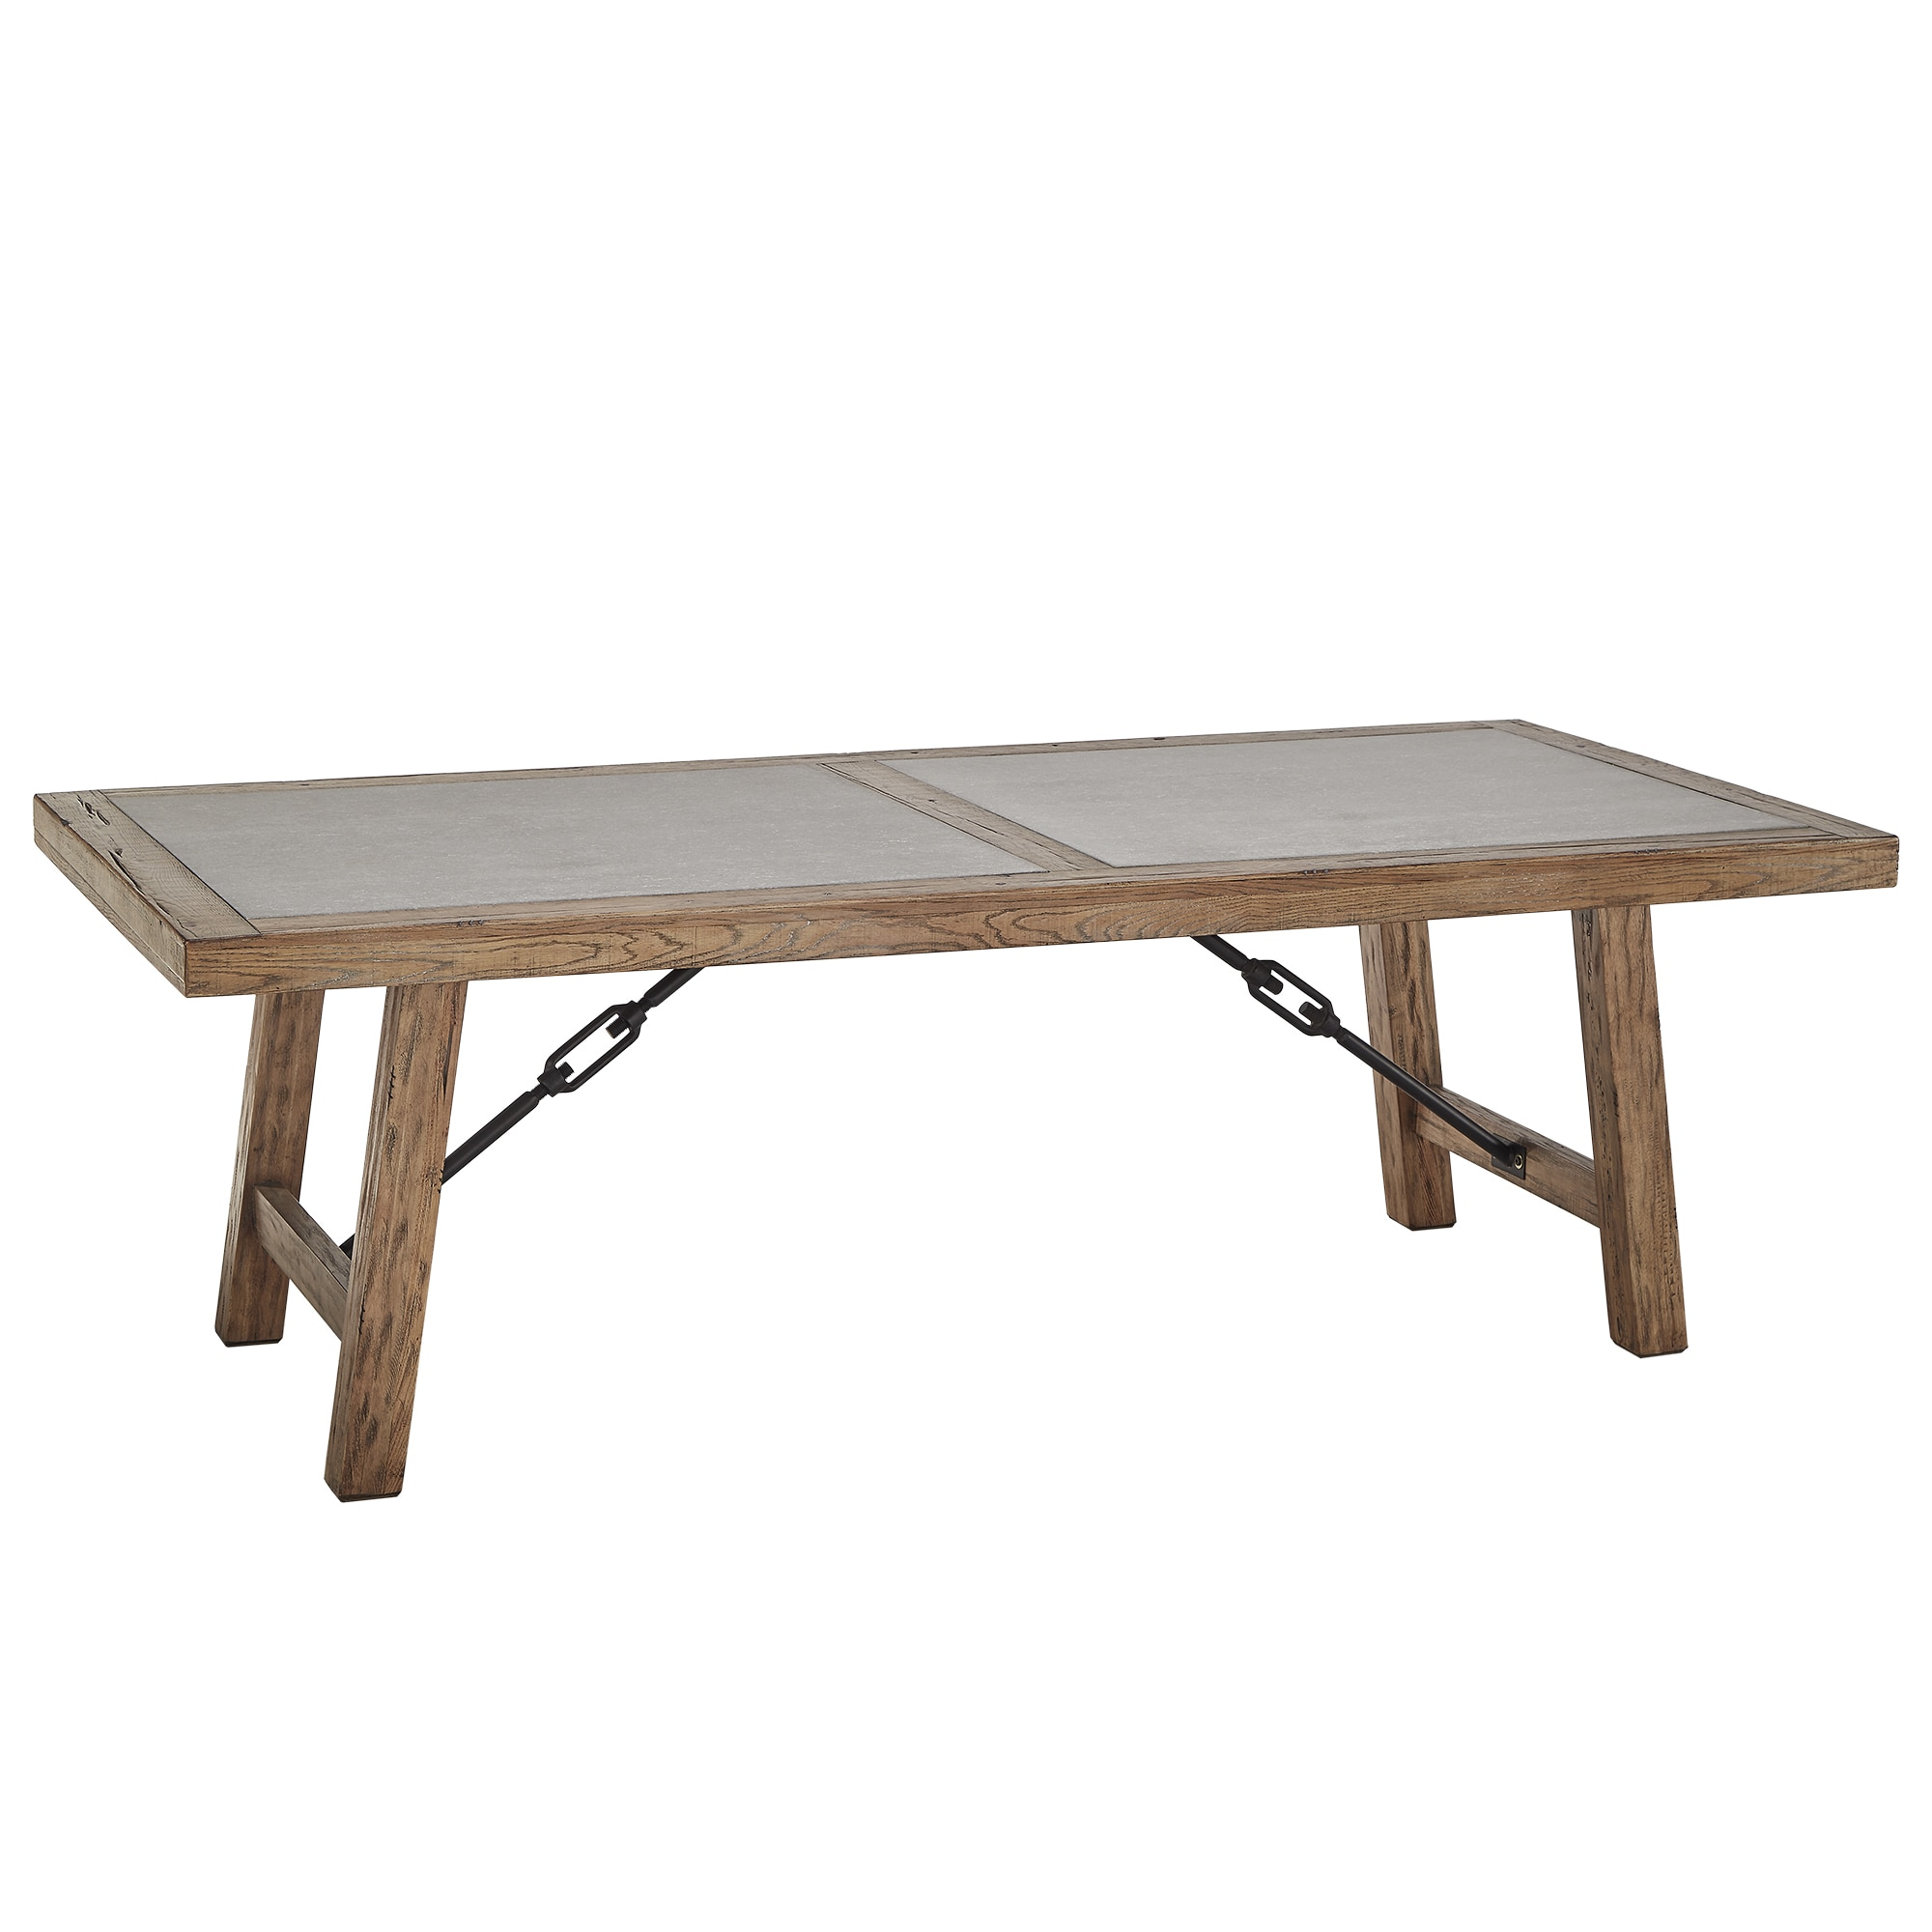 Attractive Dakota Oak Reinforced Concrete Trestle Dining Table By INSPIRE Q Artisan    Free Shipping Today   Overstock.com   18845777